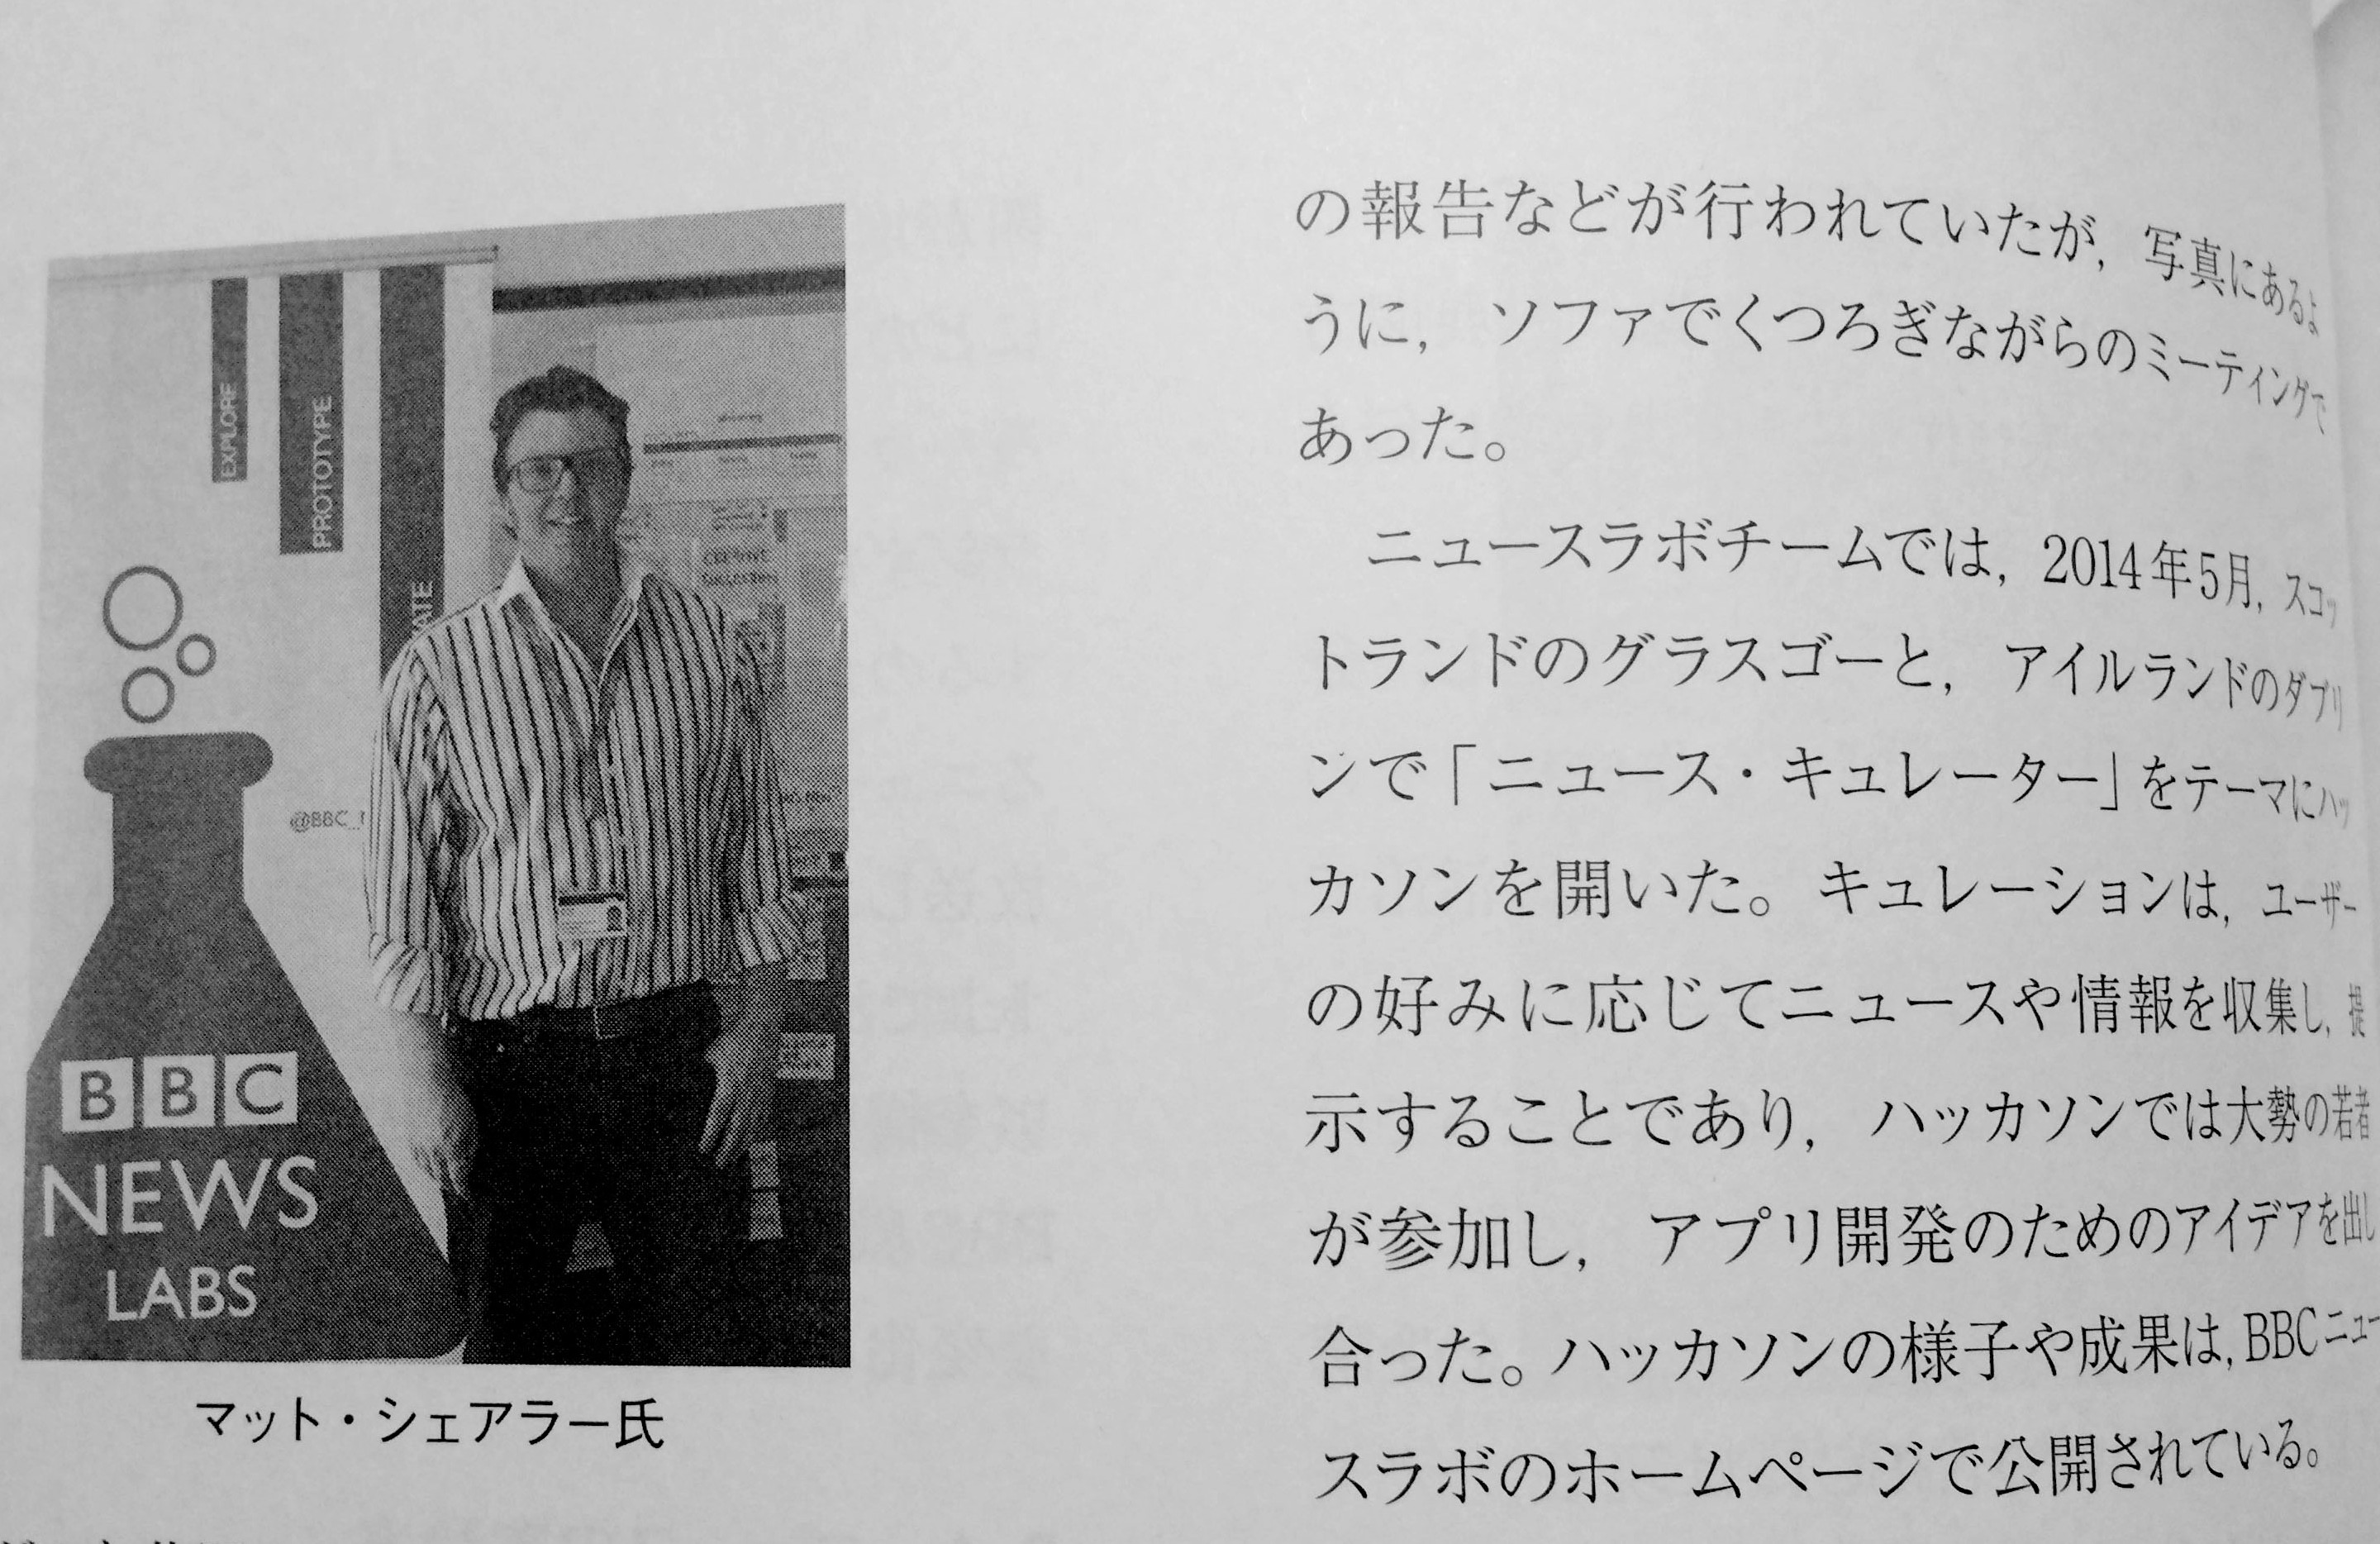 Matt Shearer, BBC News Labs, in NHK Broadcast Research Magazine - Feb 2015